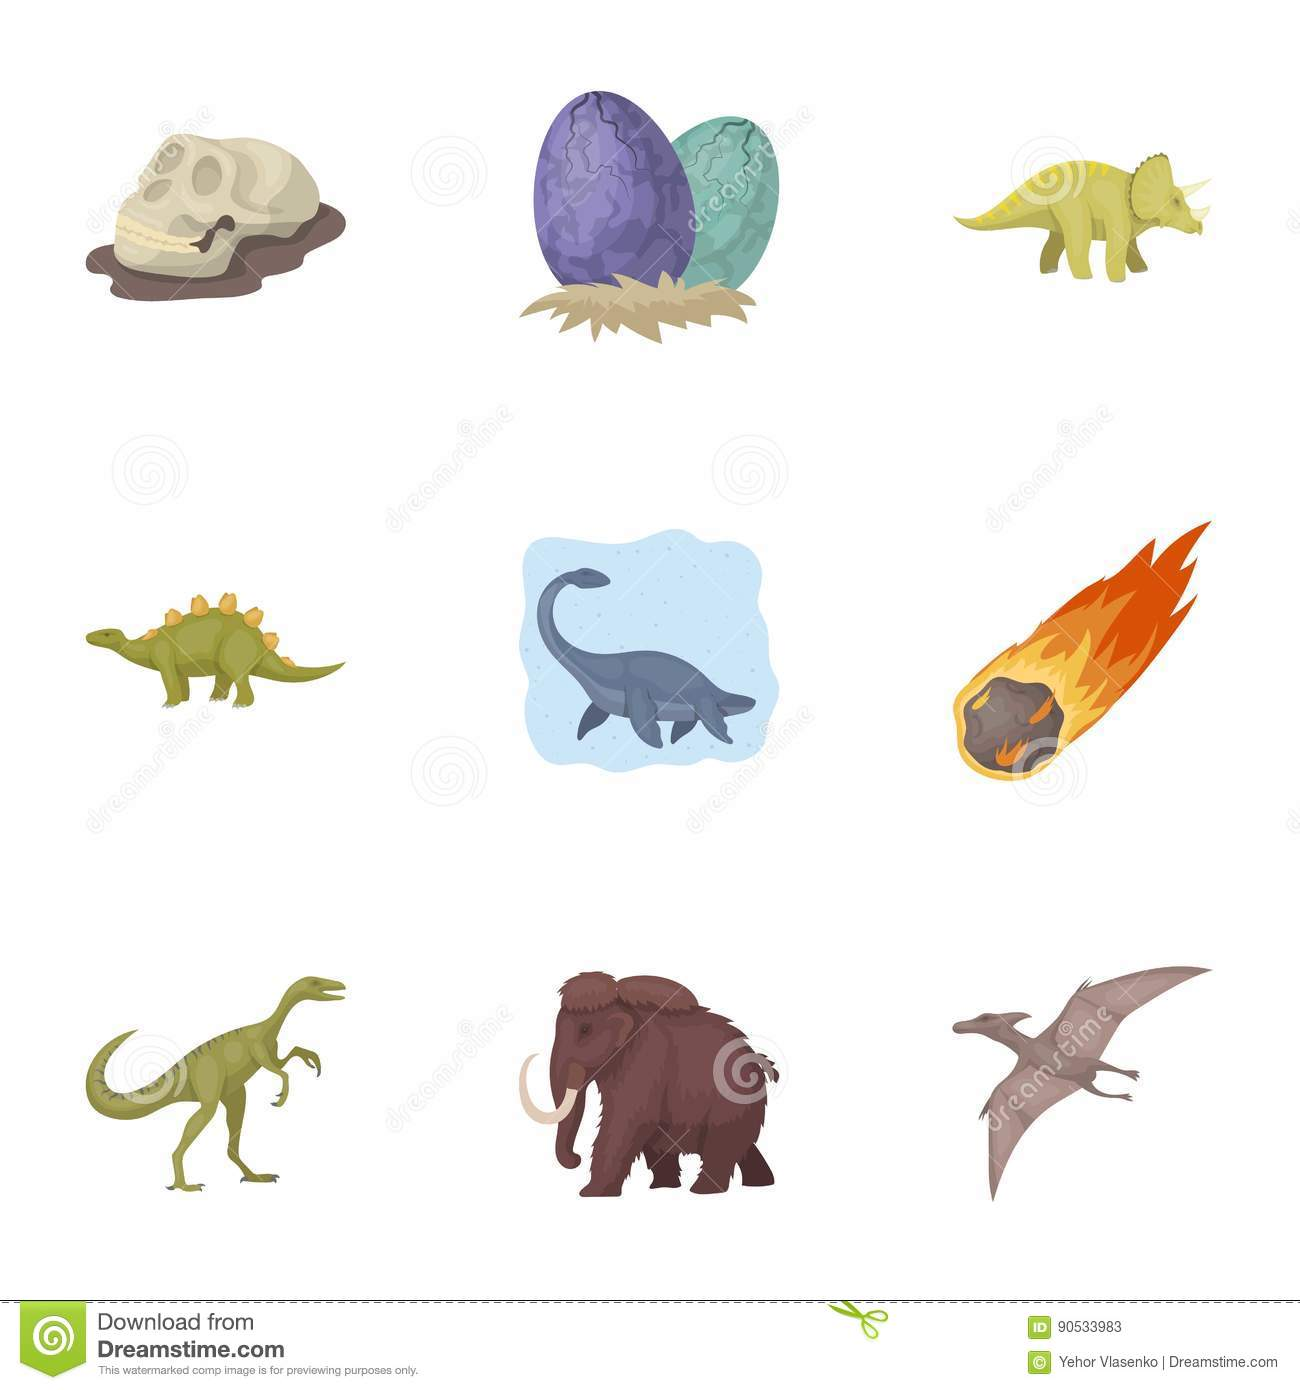 Image of: Glad Ancient Extinct Animals And Their Tracks And Remains Dinosaurs Tyrannosaurs Pnictosaursdinisaurs Dreamstimecom Ancient Extinct Animals And Their Tracks And Remains Dinosaurs